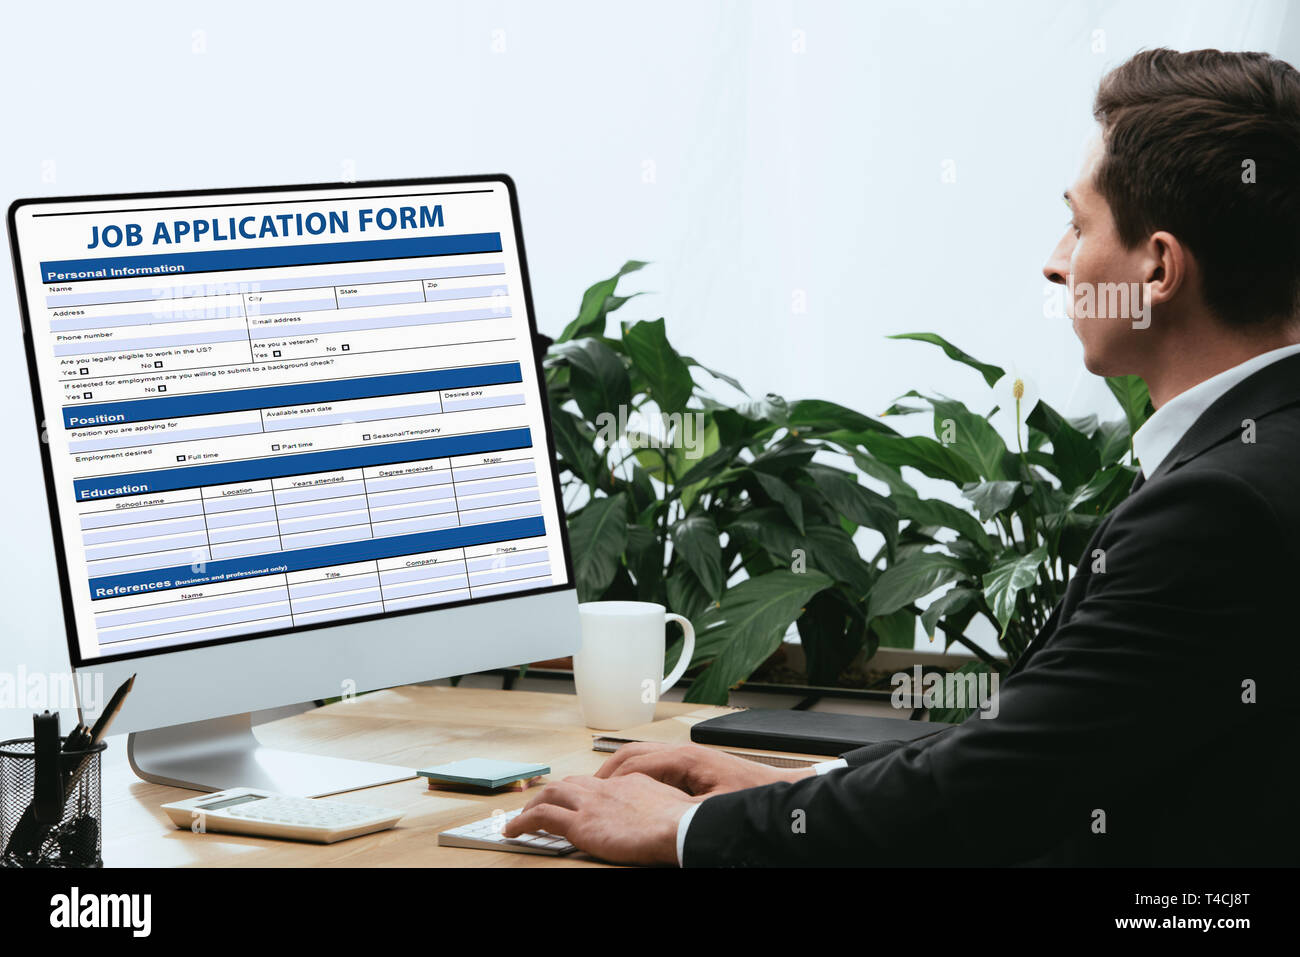 man in suit filling in Job Application Form, Employment Career Concept Stock Photo